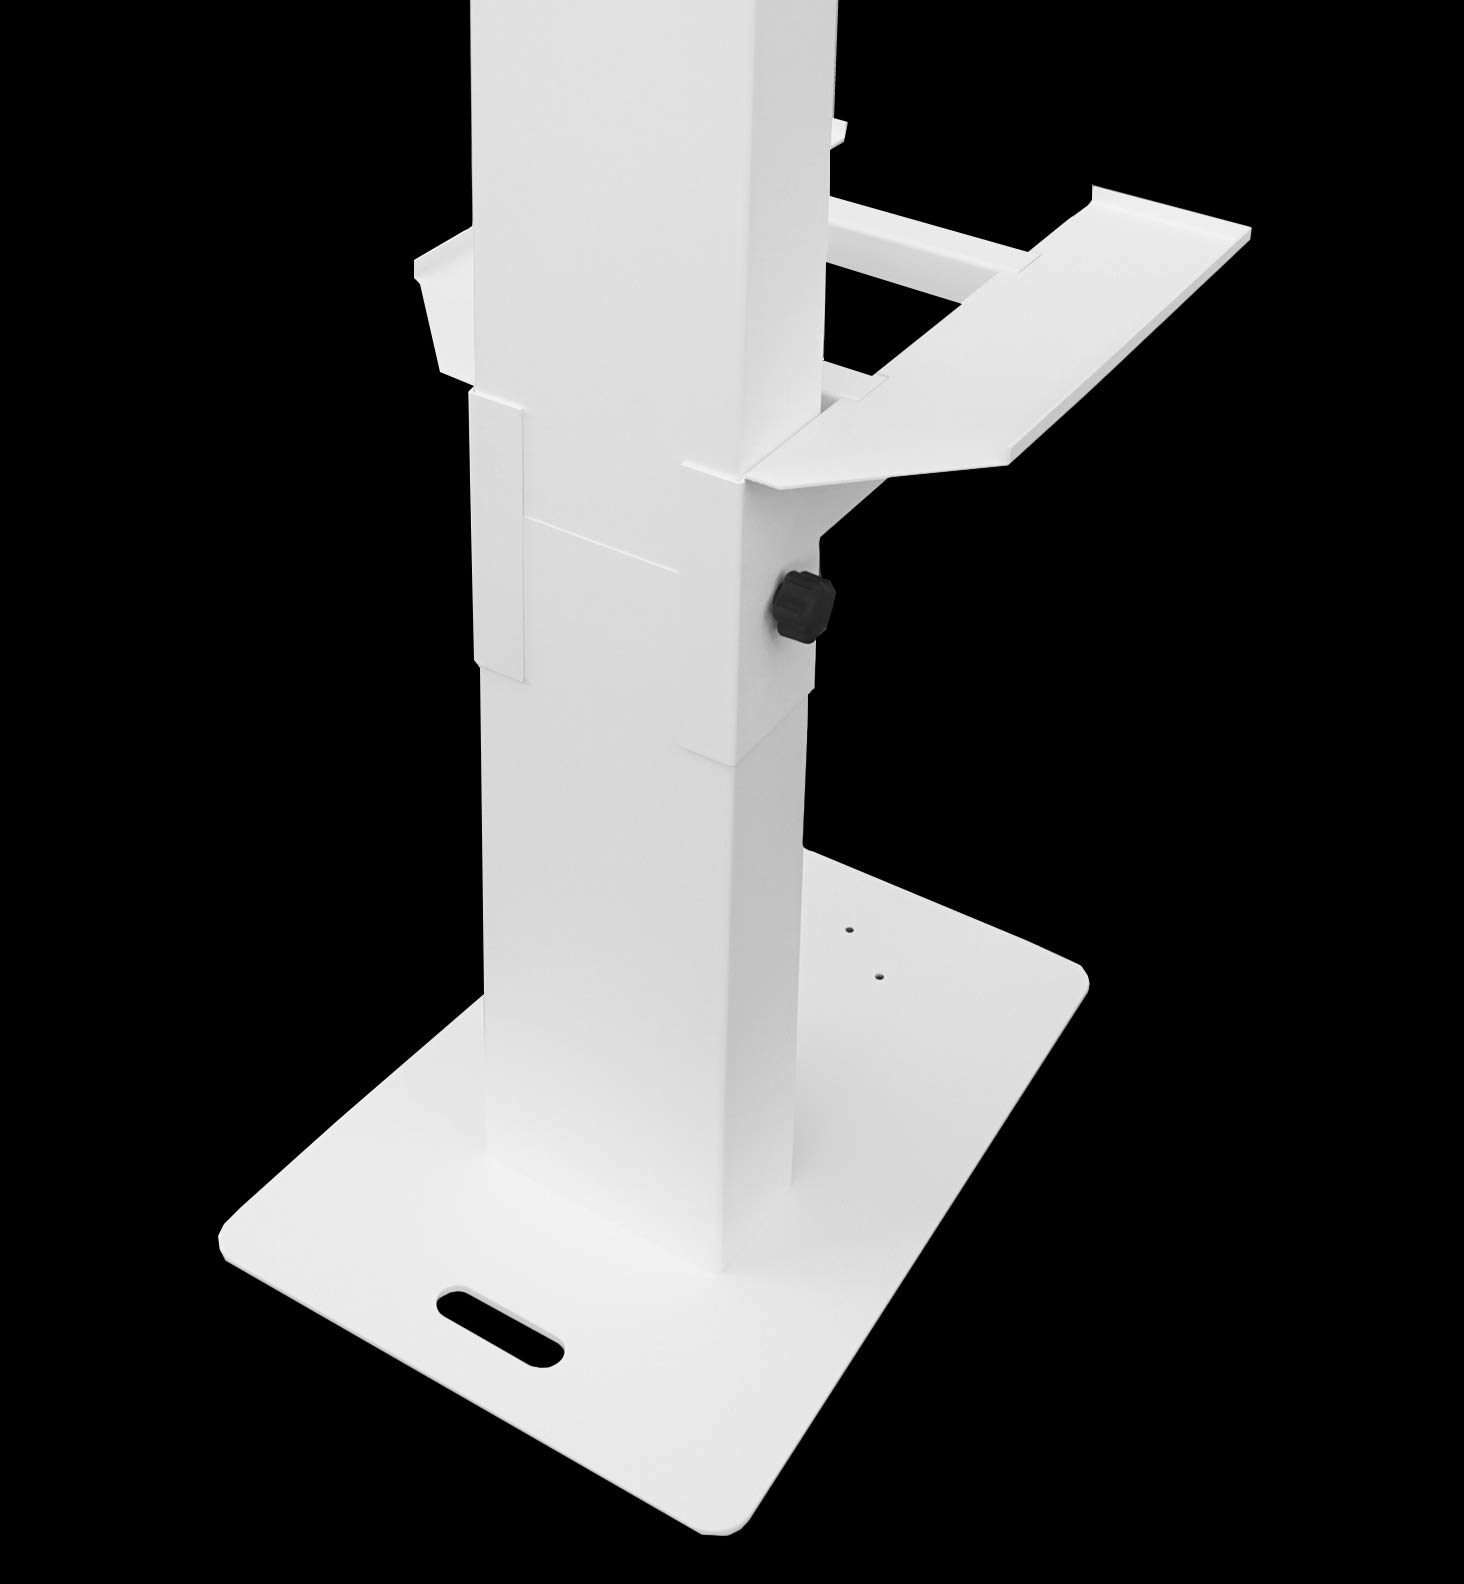 T- Series Printer Shelf for T12 3.0 Eco Planar / T12 LED / T17 4.0 / T20 2.0 Eco Planar / T20R 2.0 Photobooth Shell by Boothify